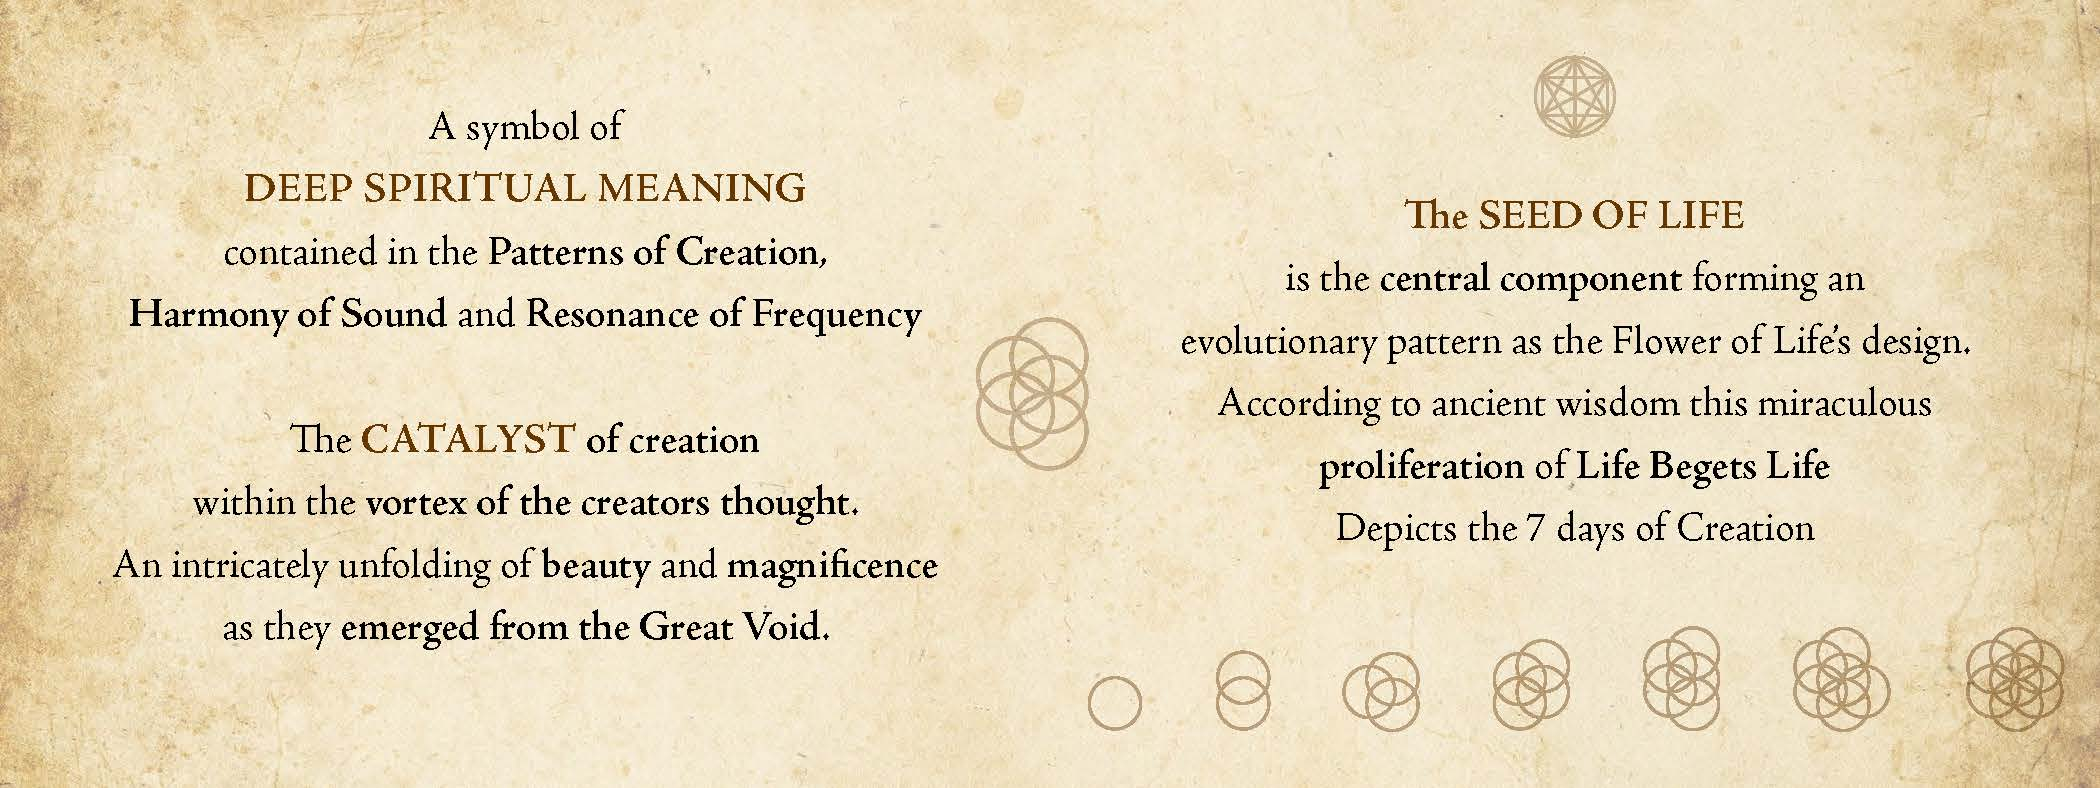 Flower of Life booklet_FINAL_Page_6.jpg